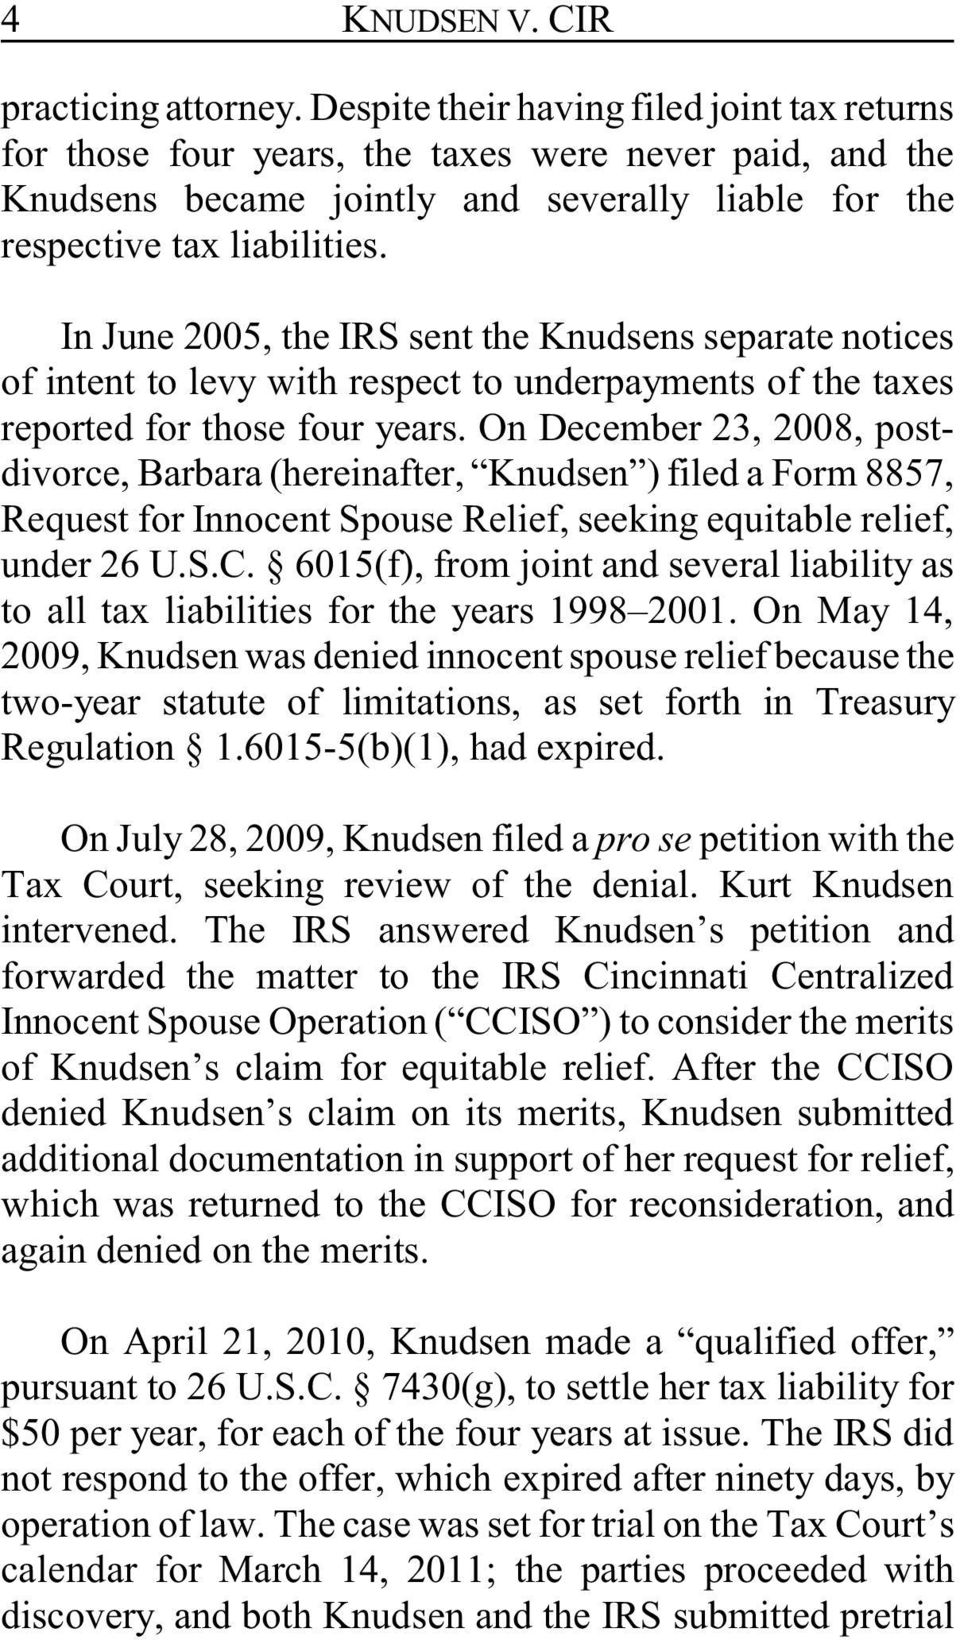 In June 2005, the IRS sent the Knudsens separate notices of intent to levy with respect to underpayments of the taxes reported for those four years.